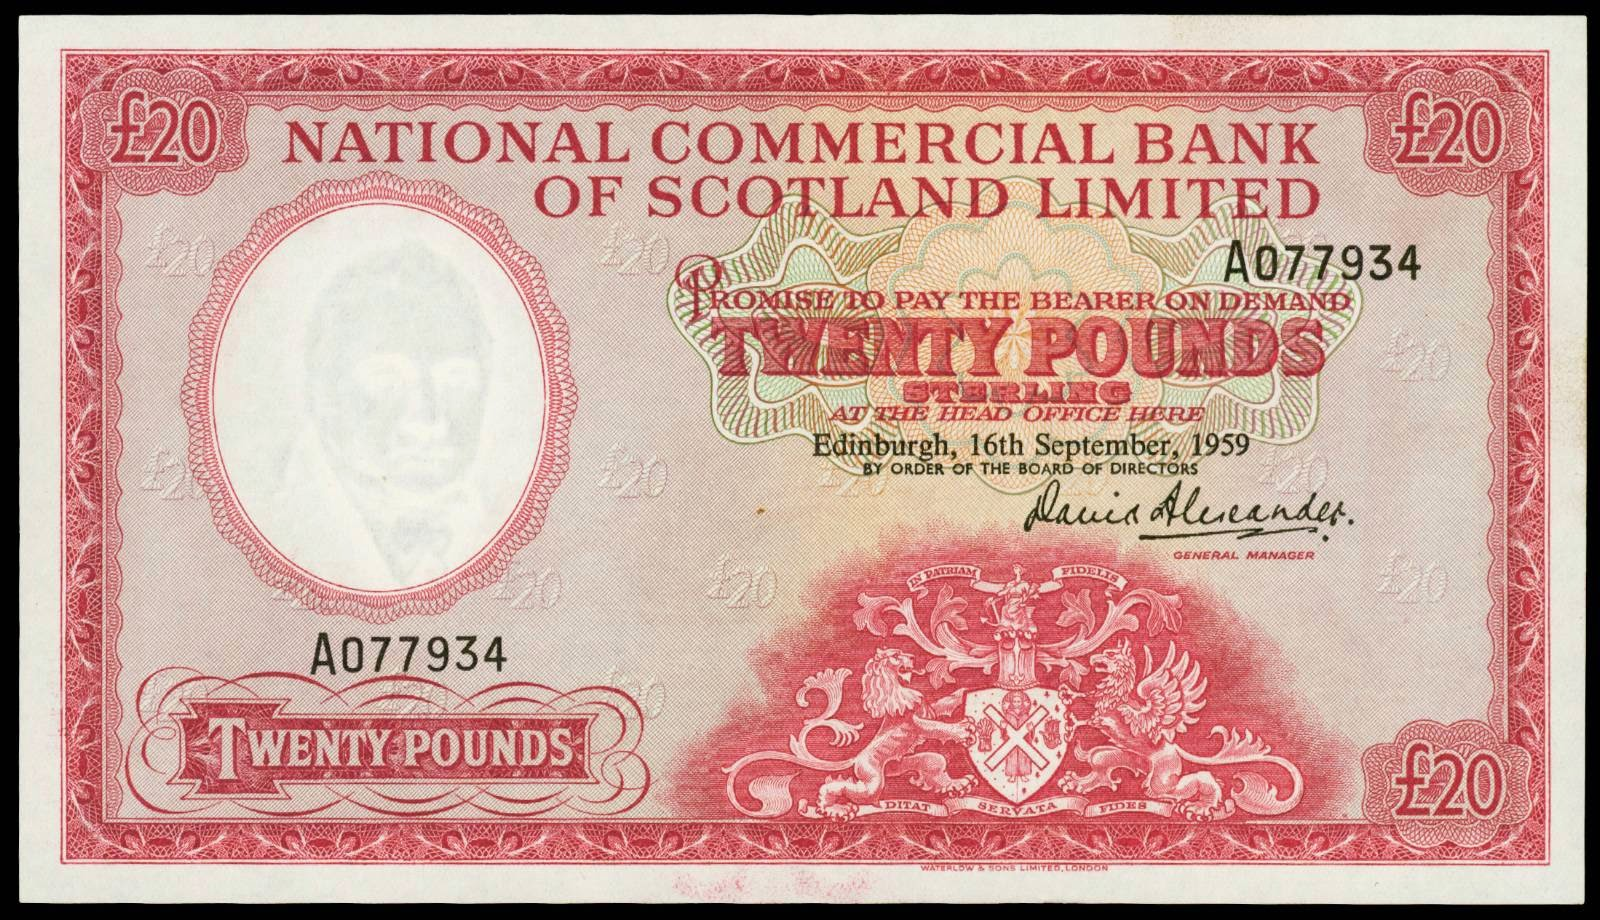 20 Pounds banknote 1959 National Commercial Bank of Scotland Limited